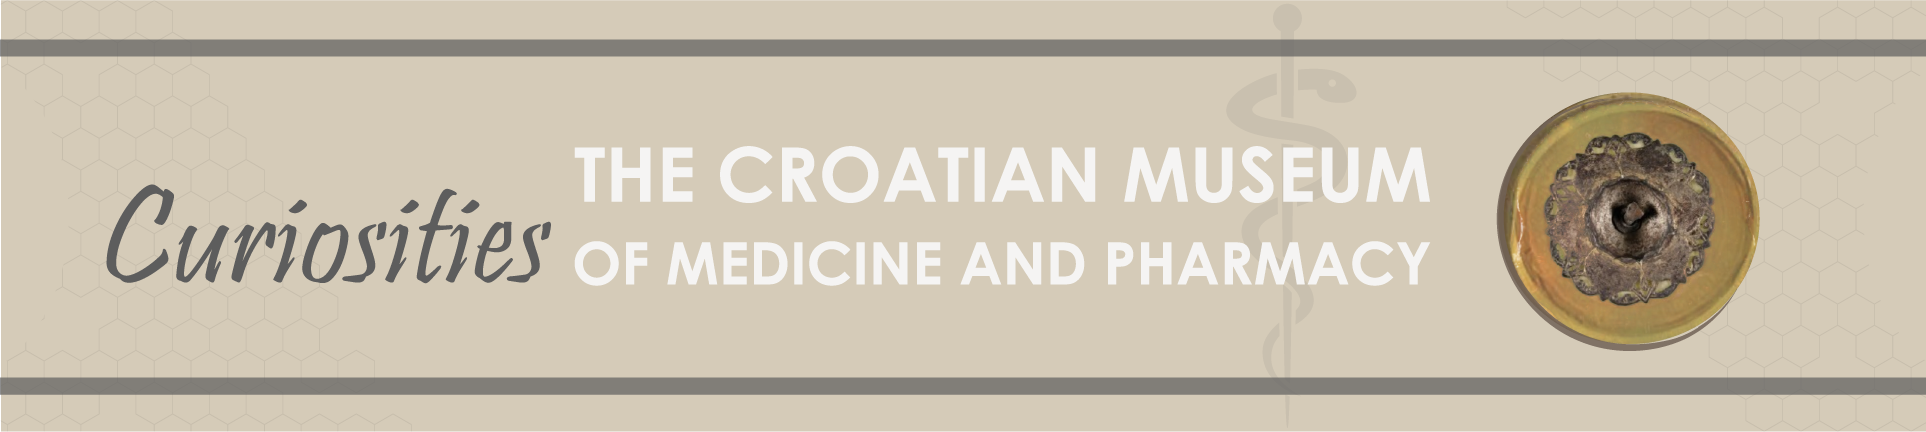 The Croatian Museum of Medicine and Pharmacy - Curiosities